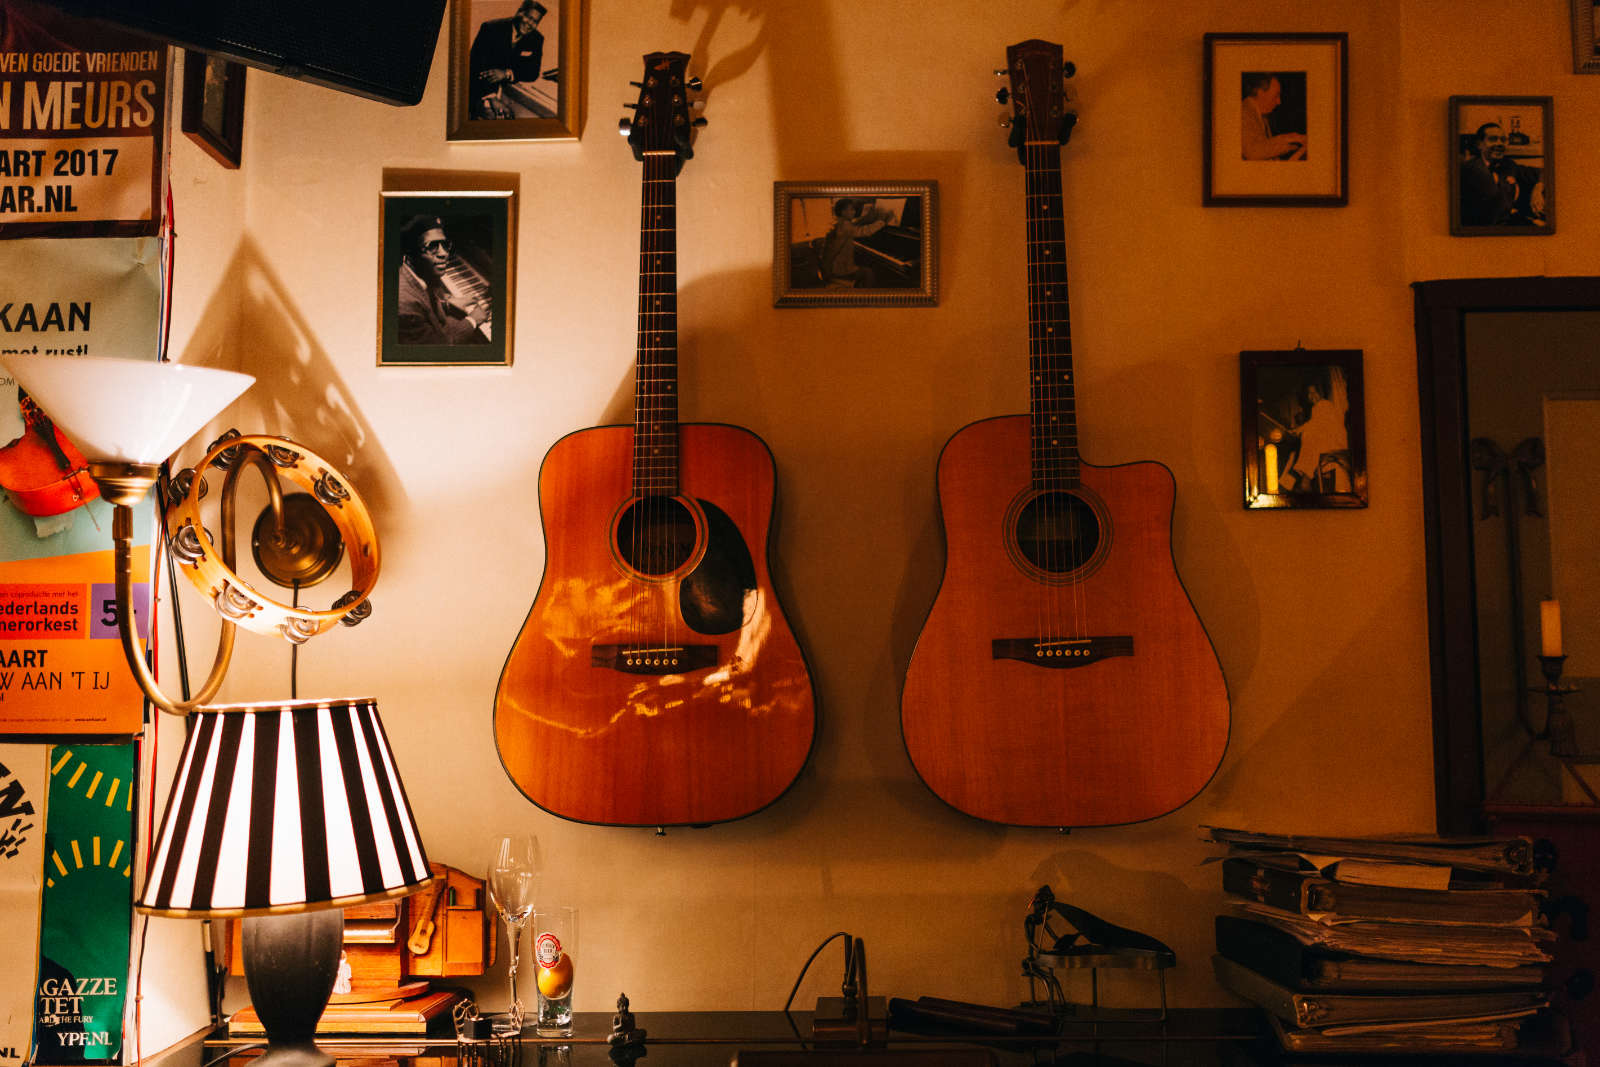 guitars hanging on the wall